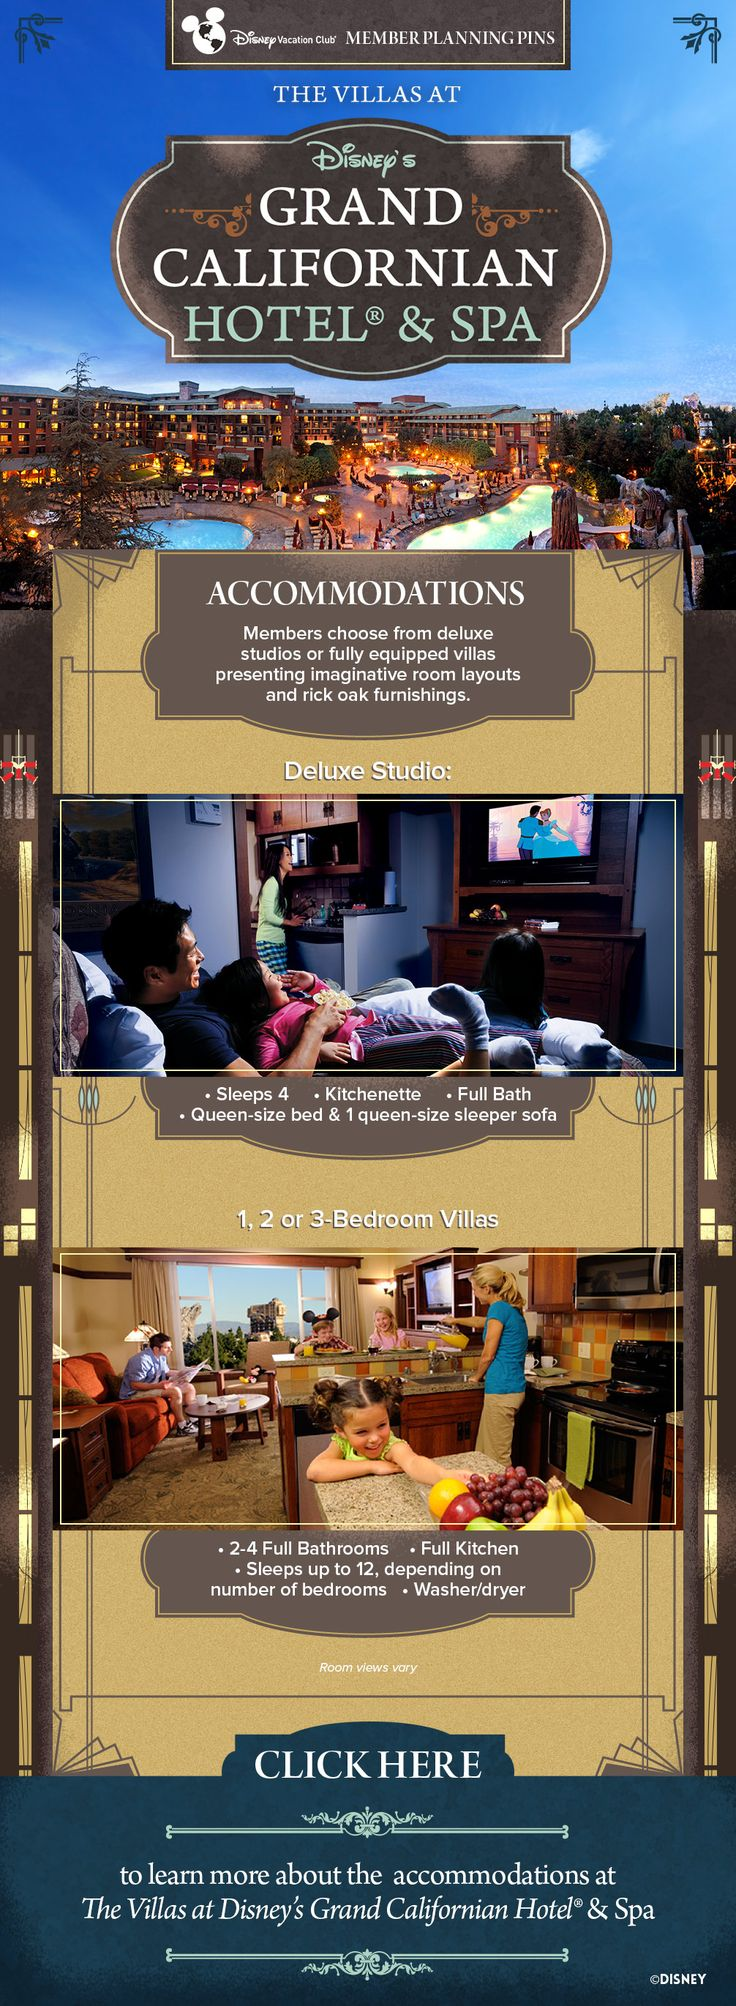 17 best images about disney vacation club resorts on - Disney grand californian 2 bedroom suite ...